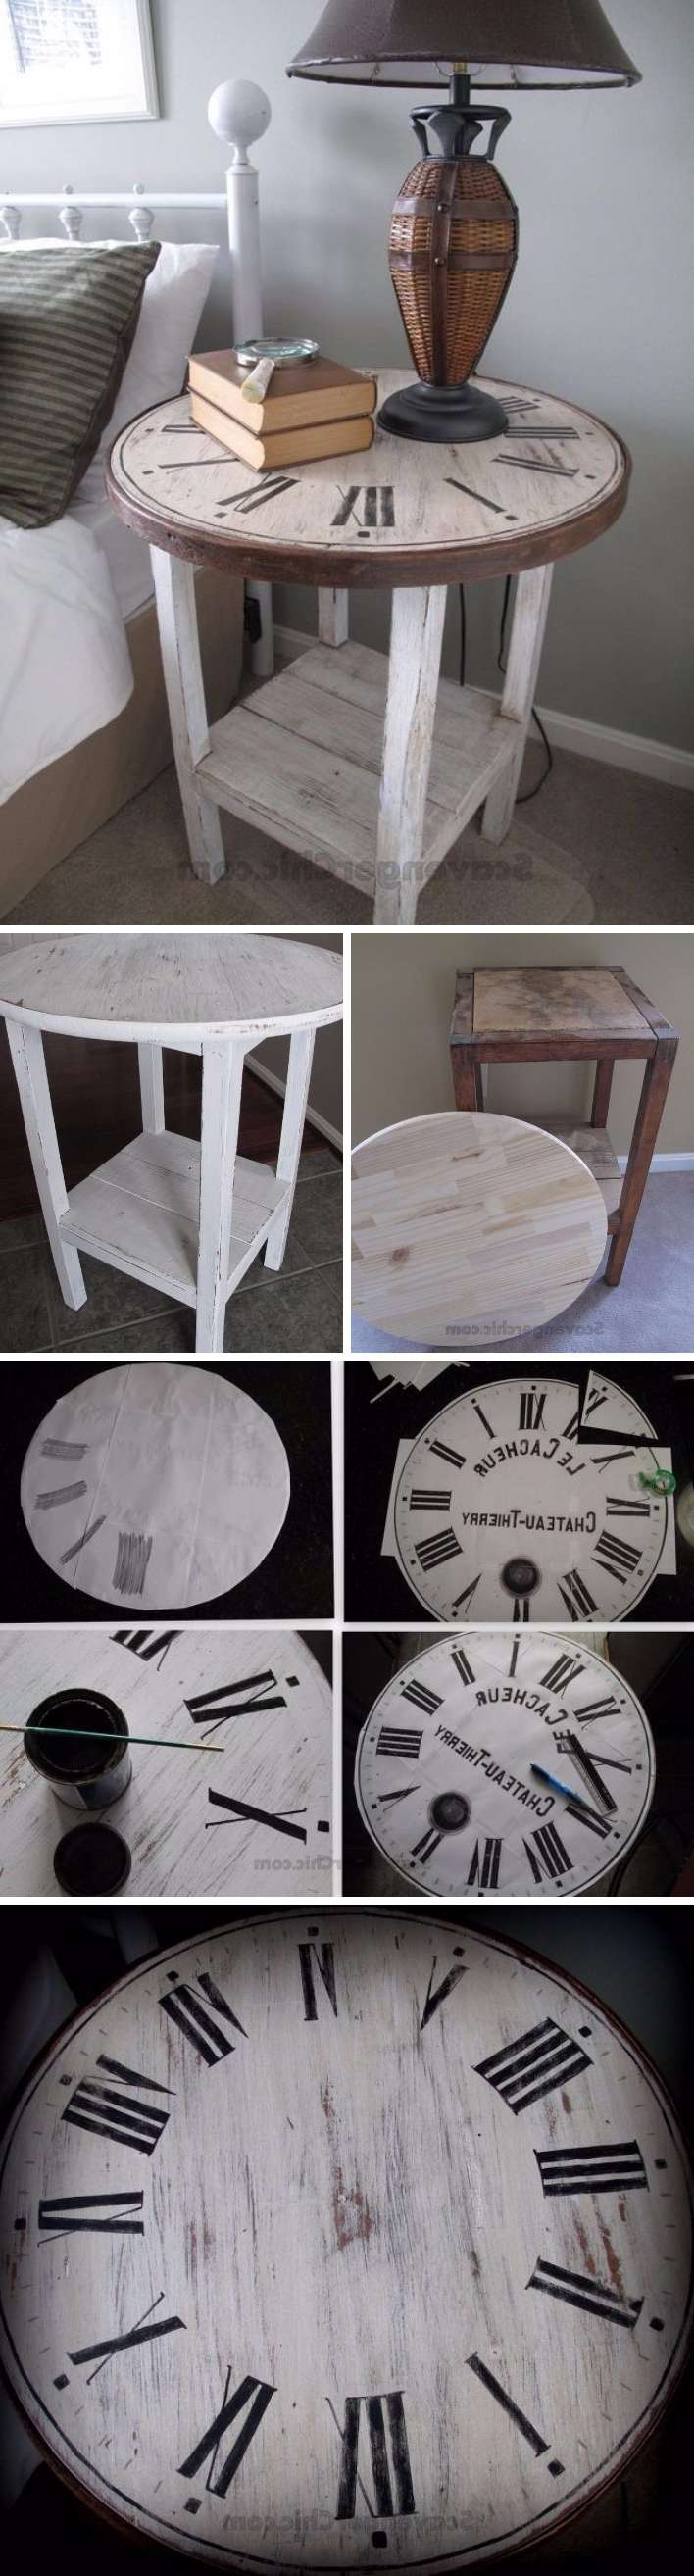 25 Diy Side Table Ideas With Lots Of Tutorials 2017 Throughout Trendy Clock Coffee Tables Round Shaped (View 1 of 20)